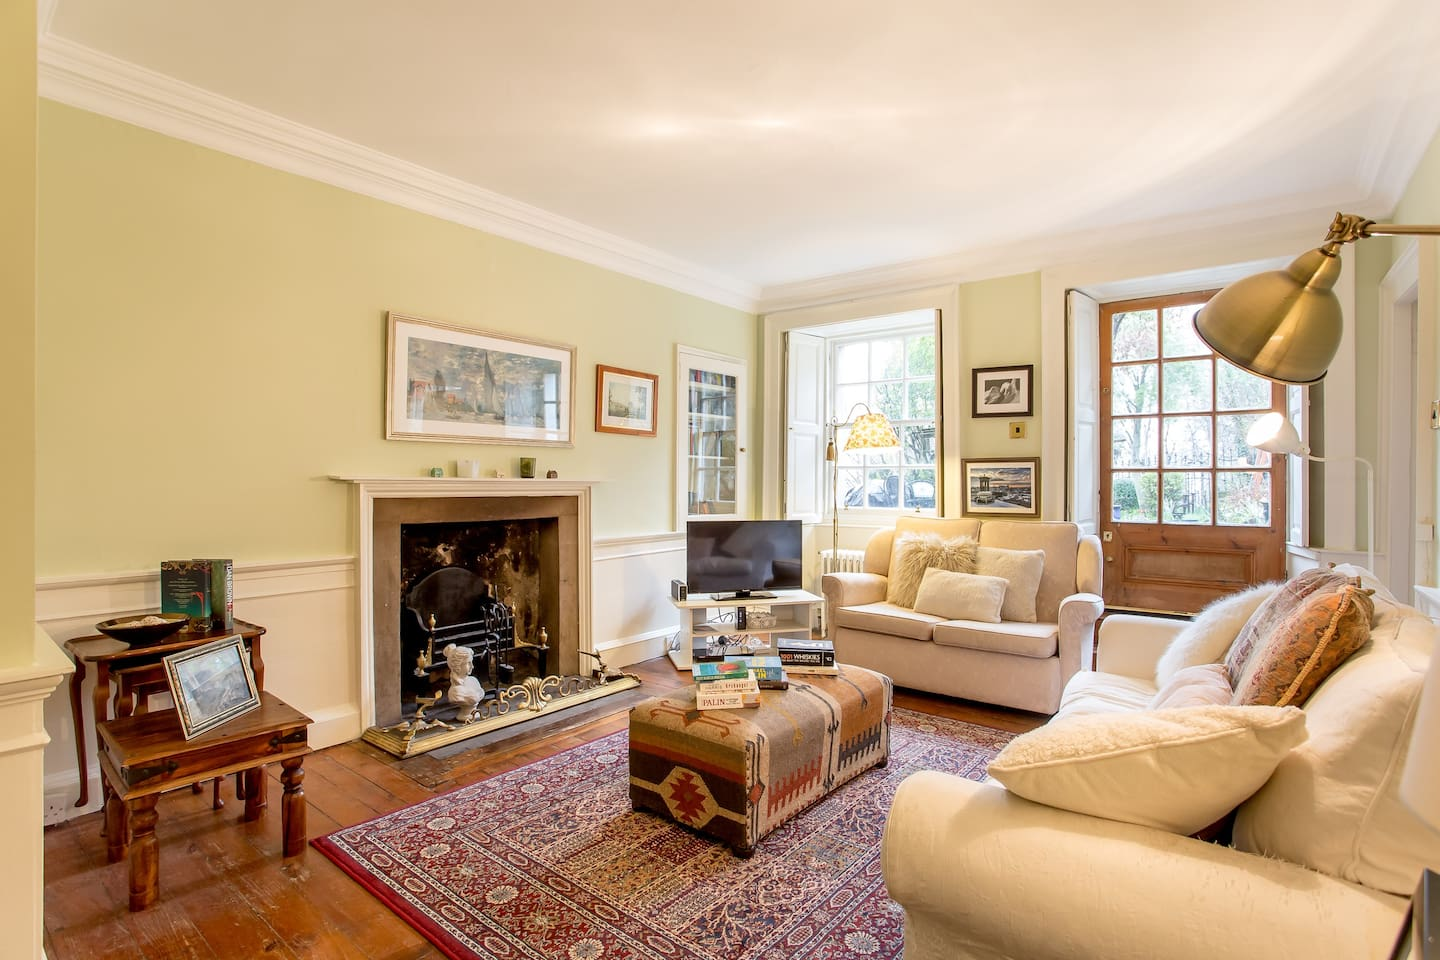 Lovely warm & cosy living room